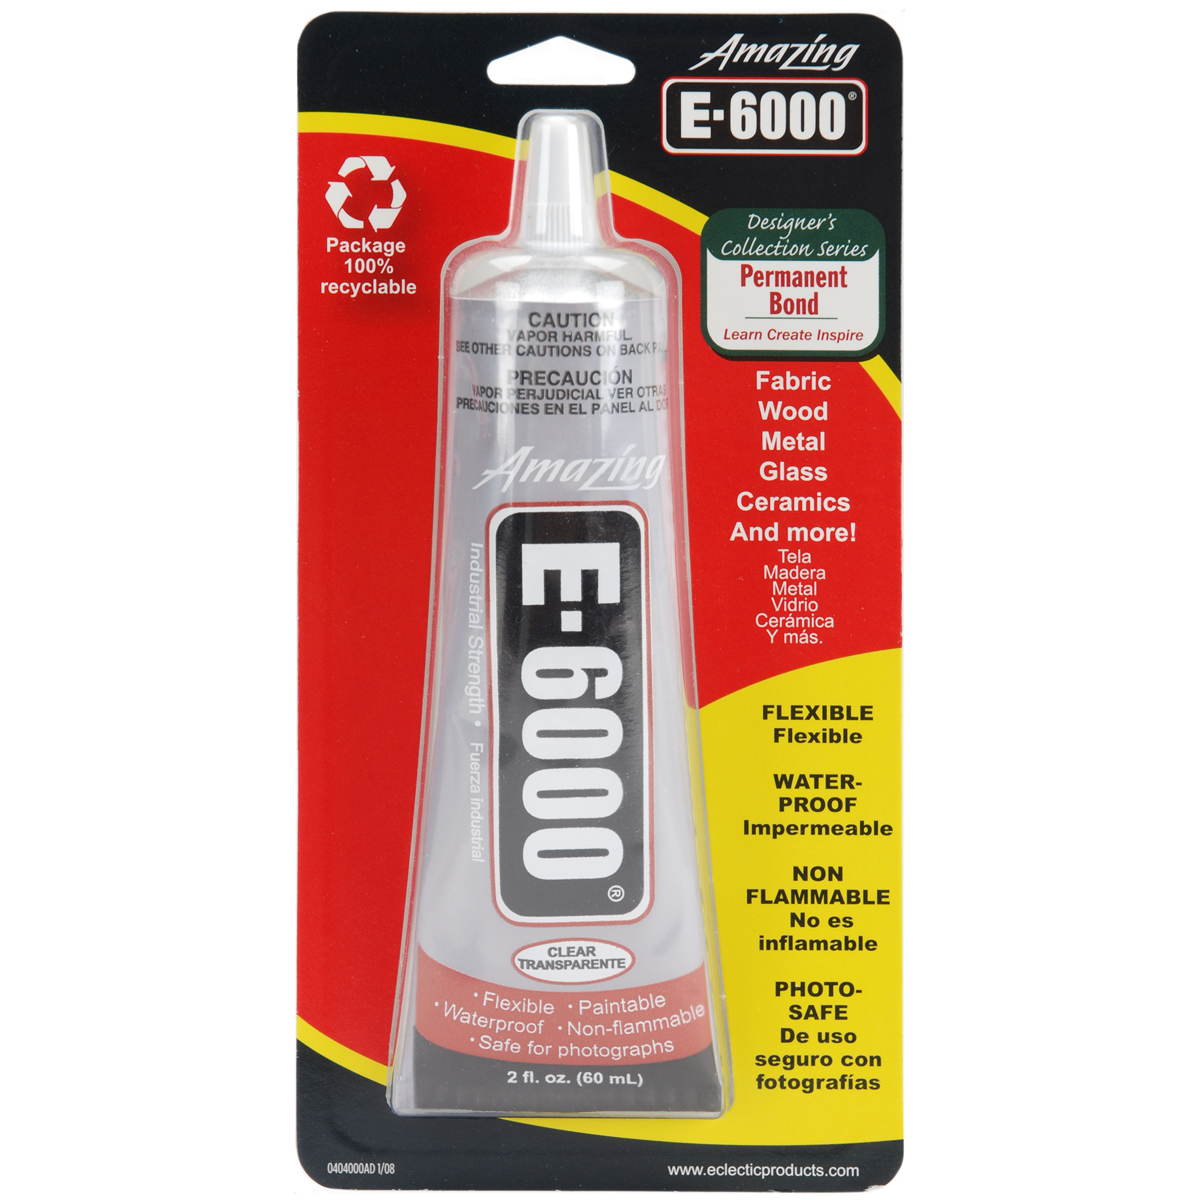 Amazing E-6000 Craft Glue, 2 oz